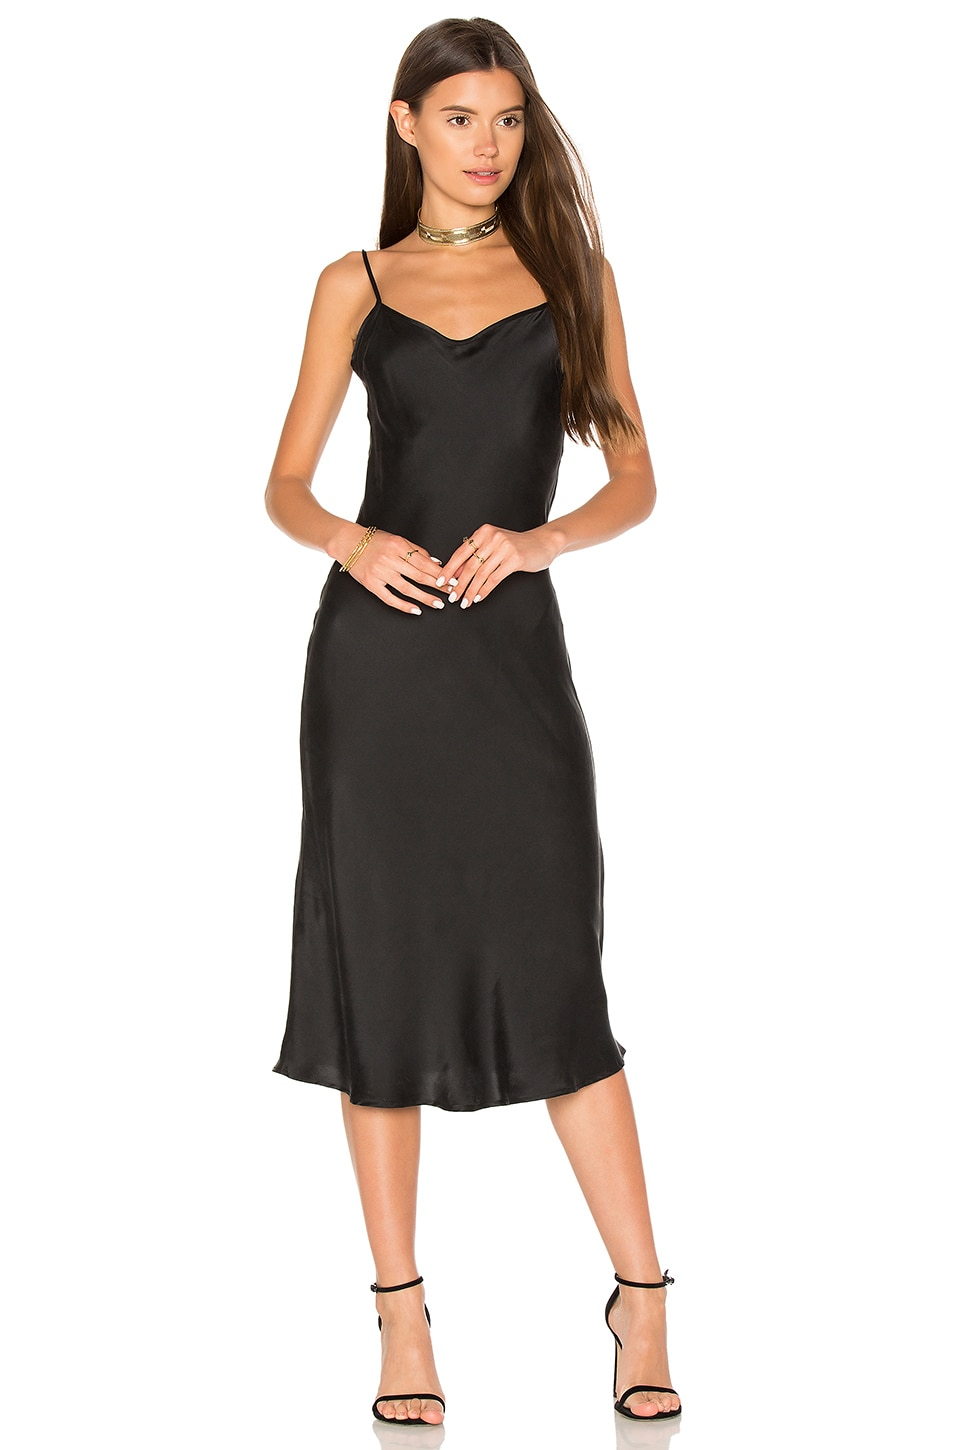 Essential Slip Dress by Flannel Australia